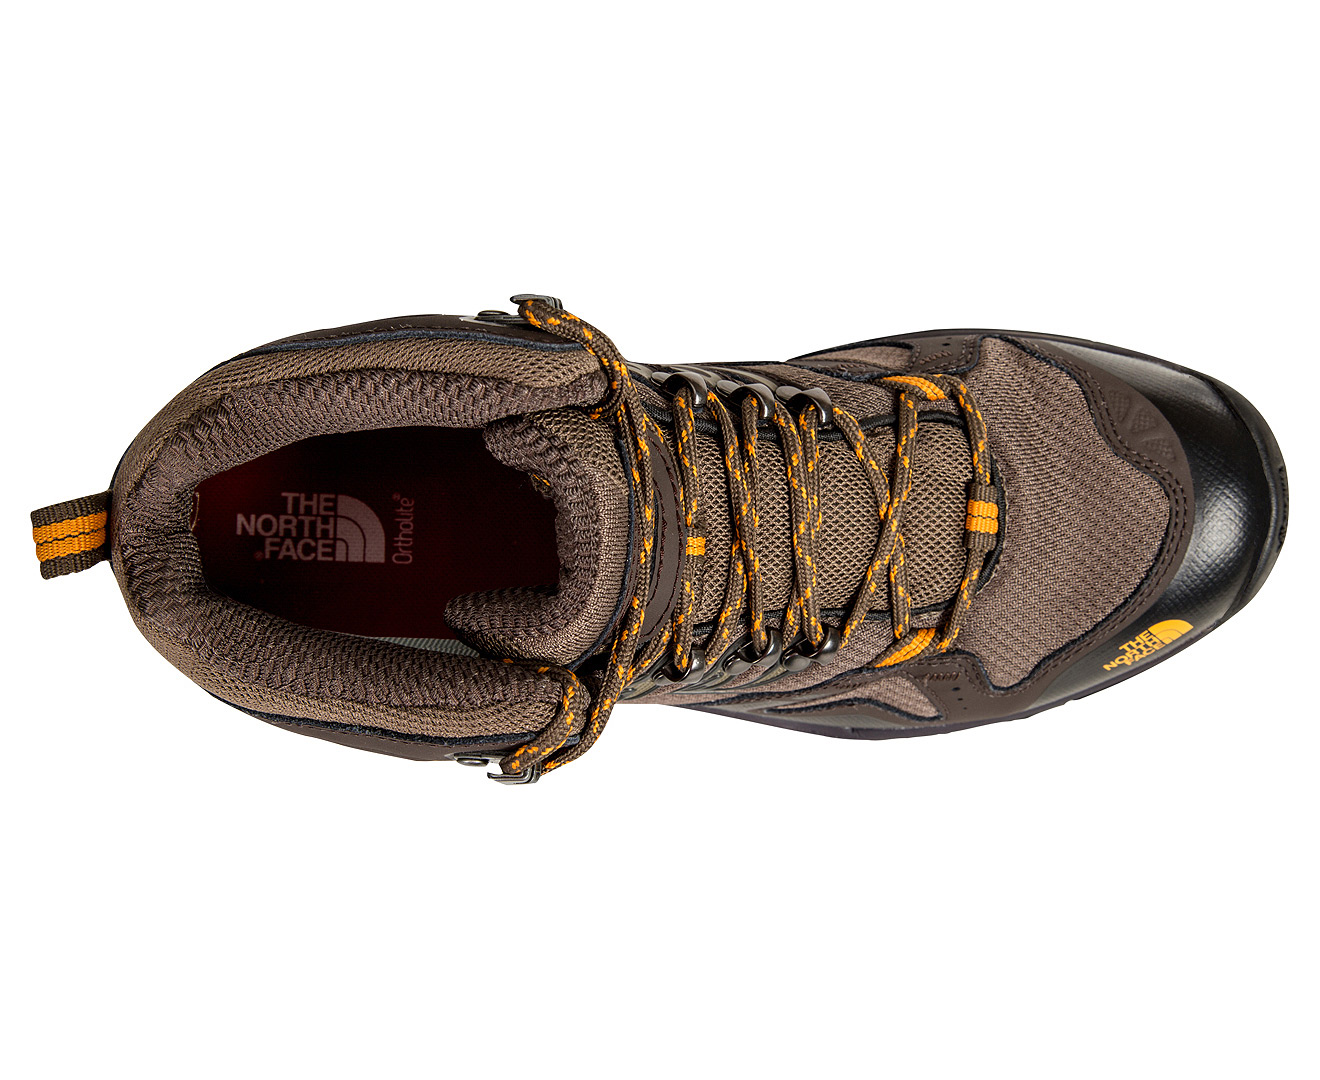 The North Face Men's Hedgehog Fastpack Mid GTX Boot ...